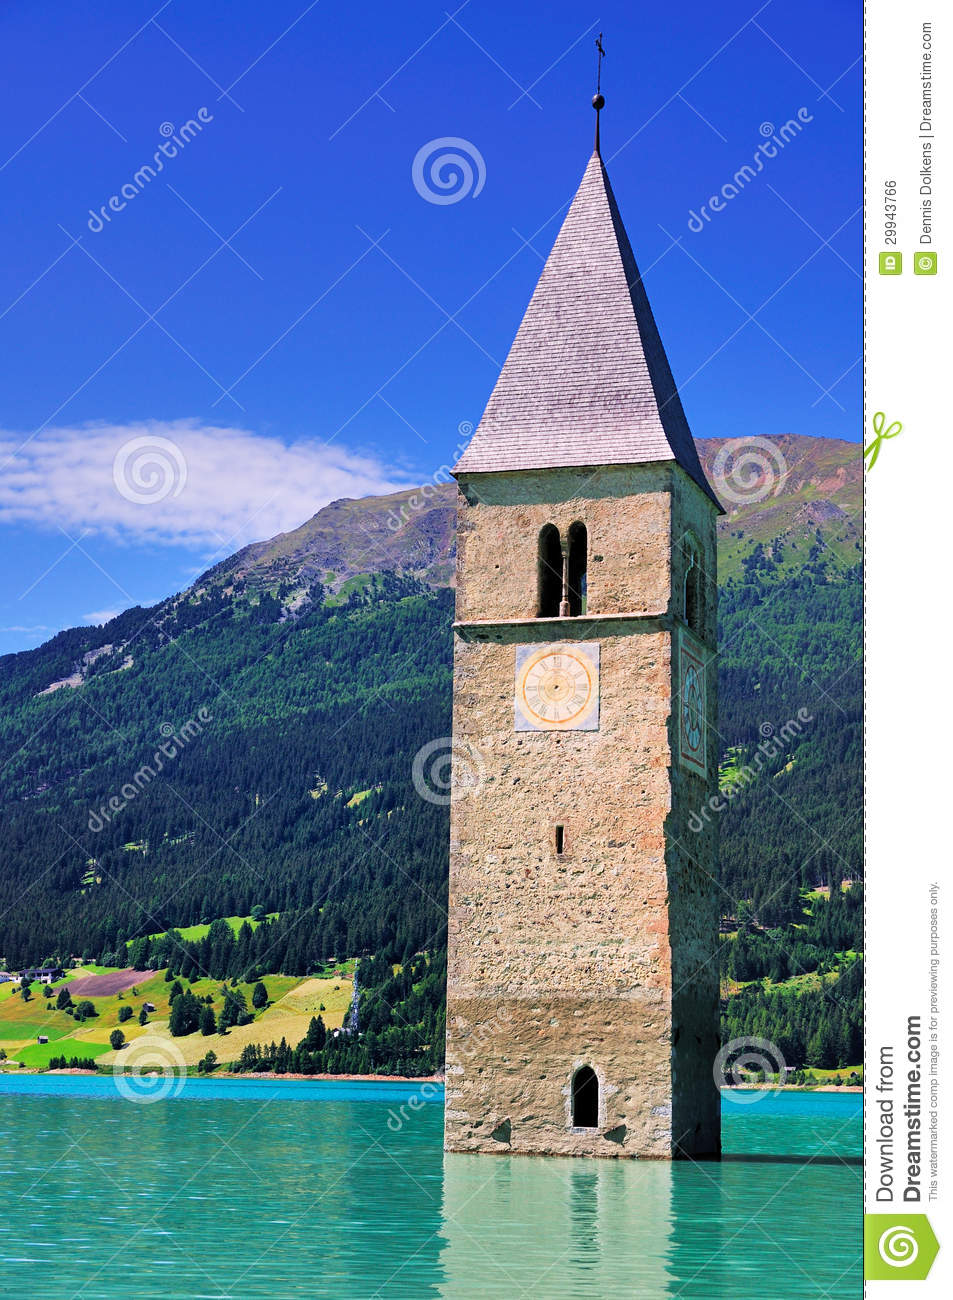 Submerged Church Tower,Reschensee, Italy Royalty Free Stock Image.